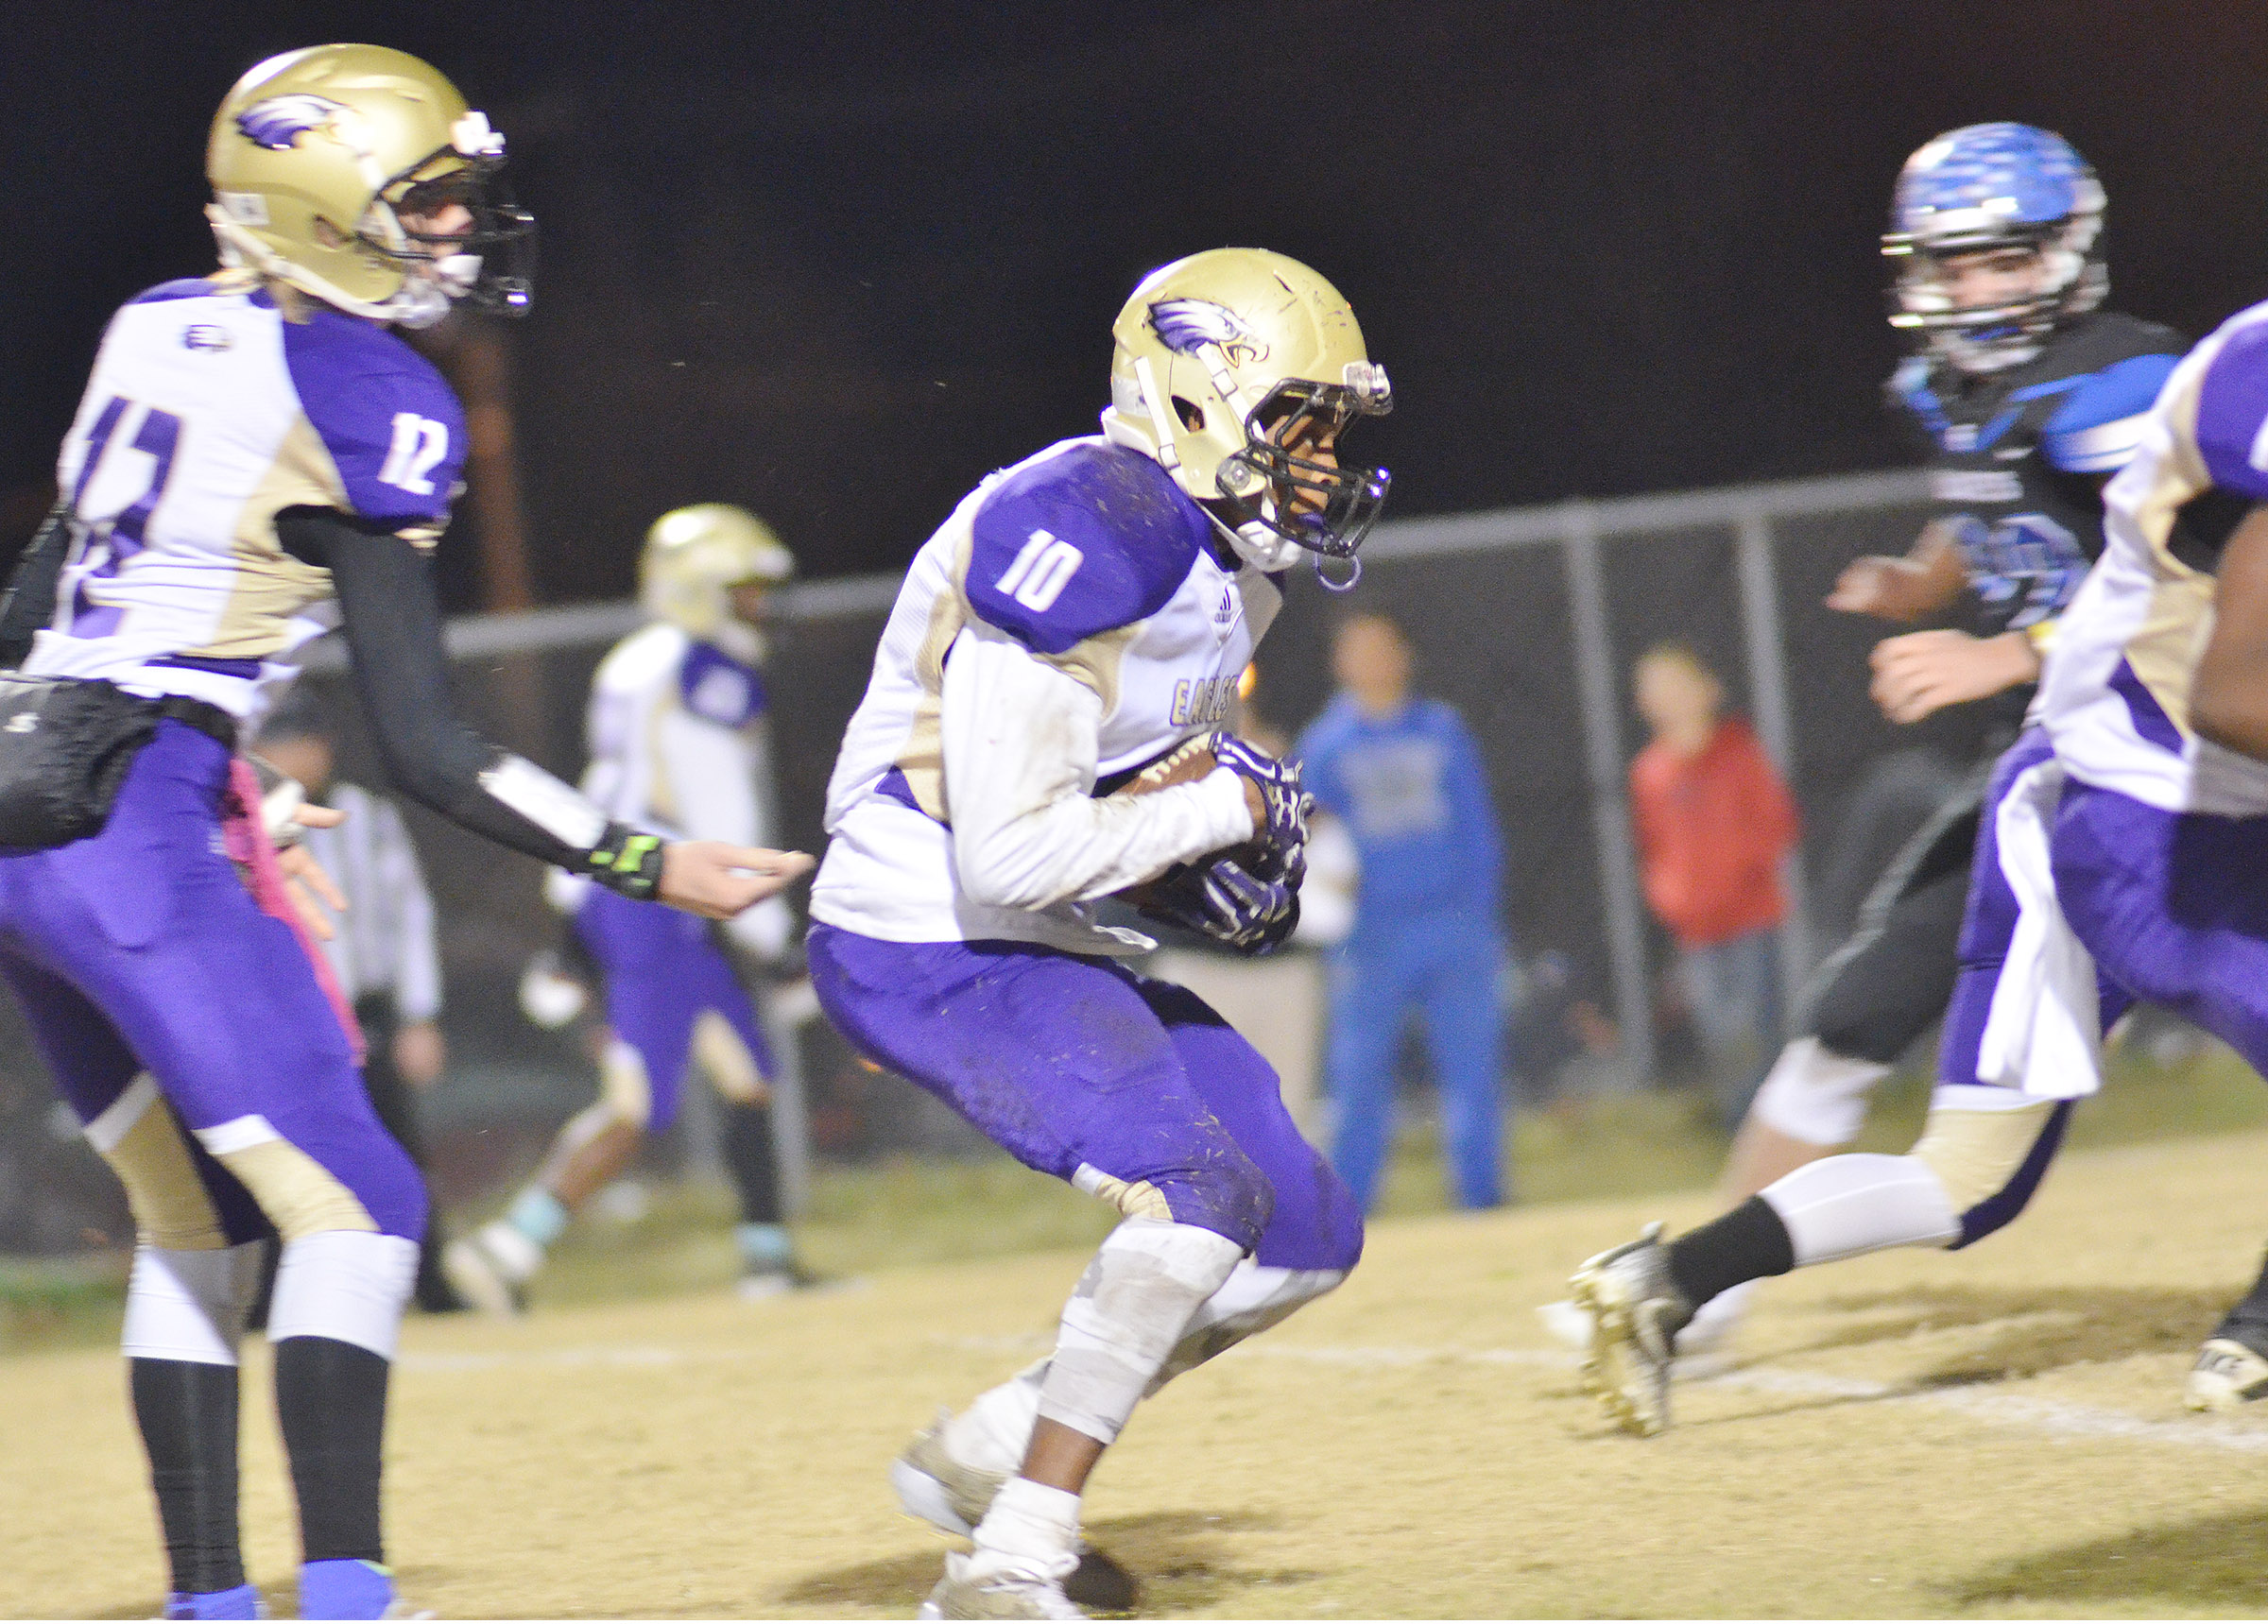 CHS senior Devonte Cubit runs the ball for a touchdown.